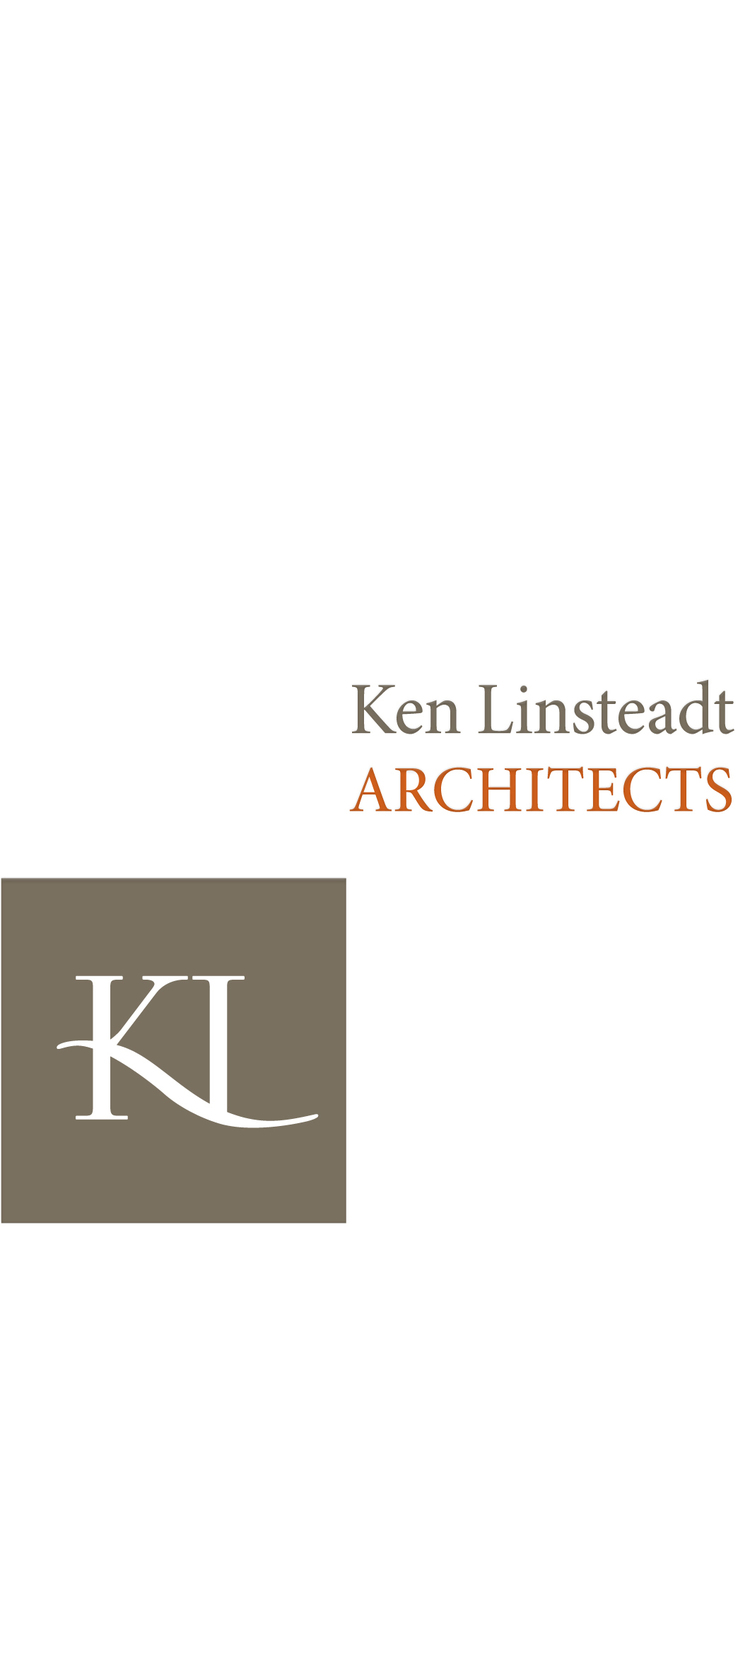 Ken Linsteadt ARCHITECTS